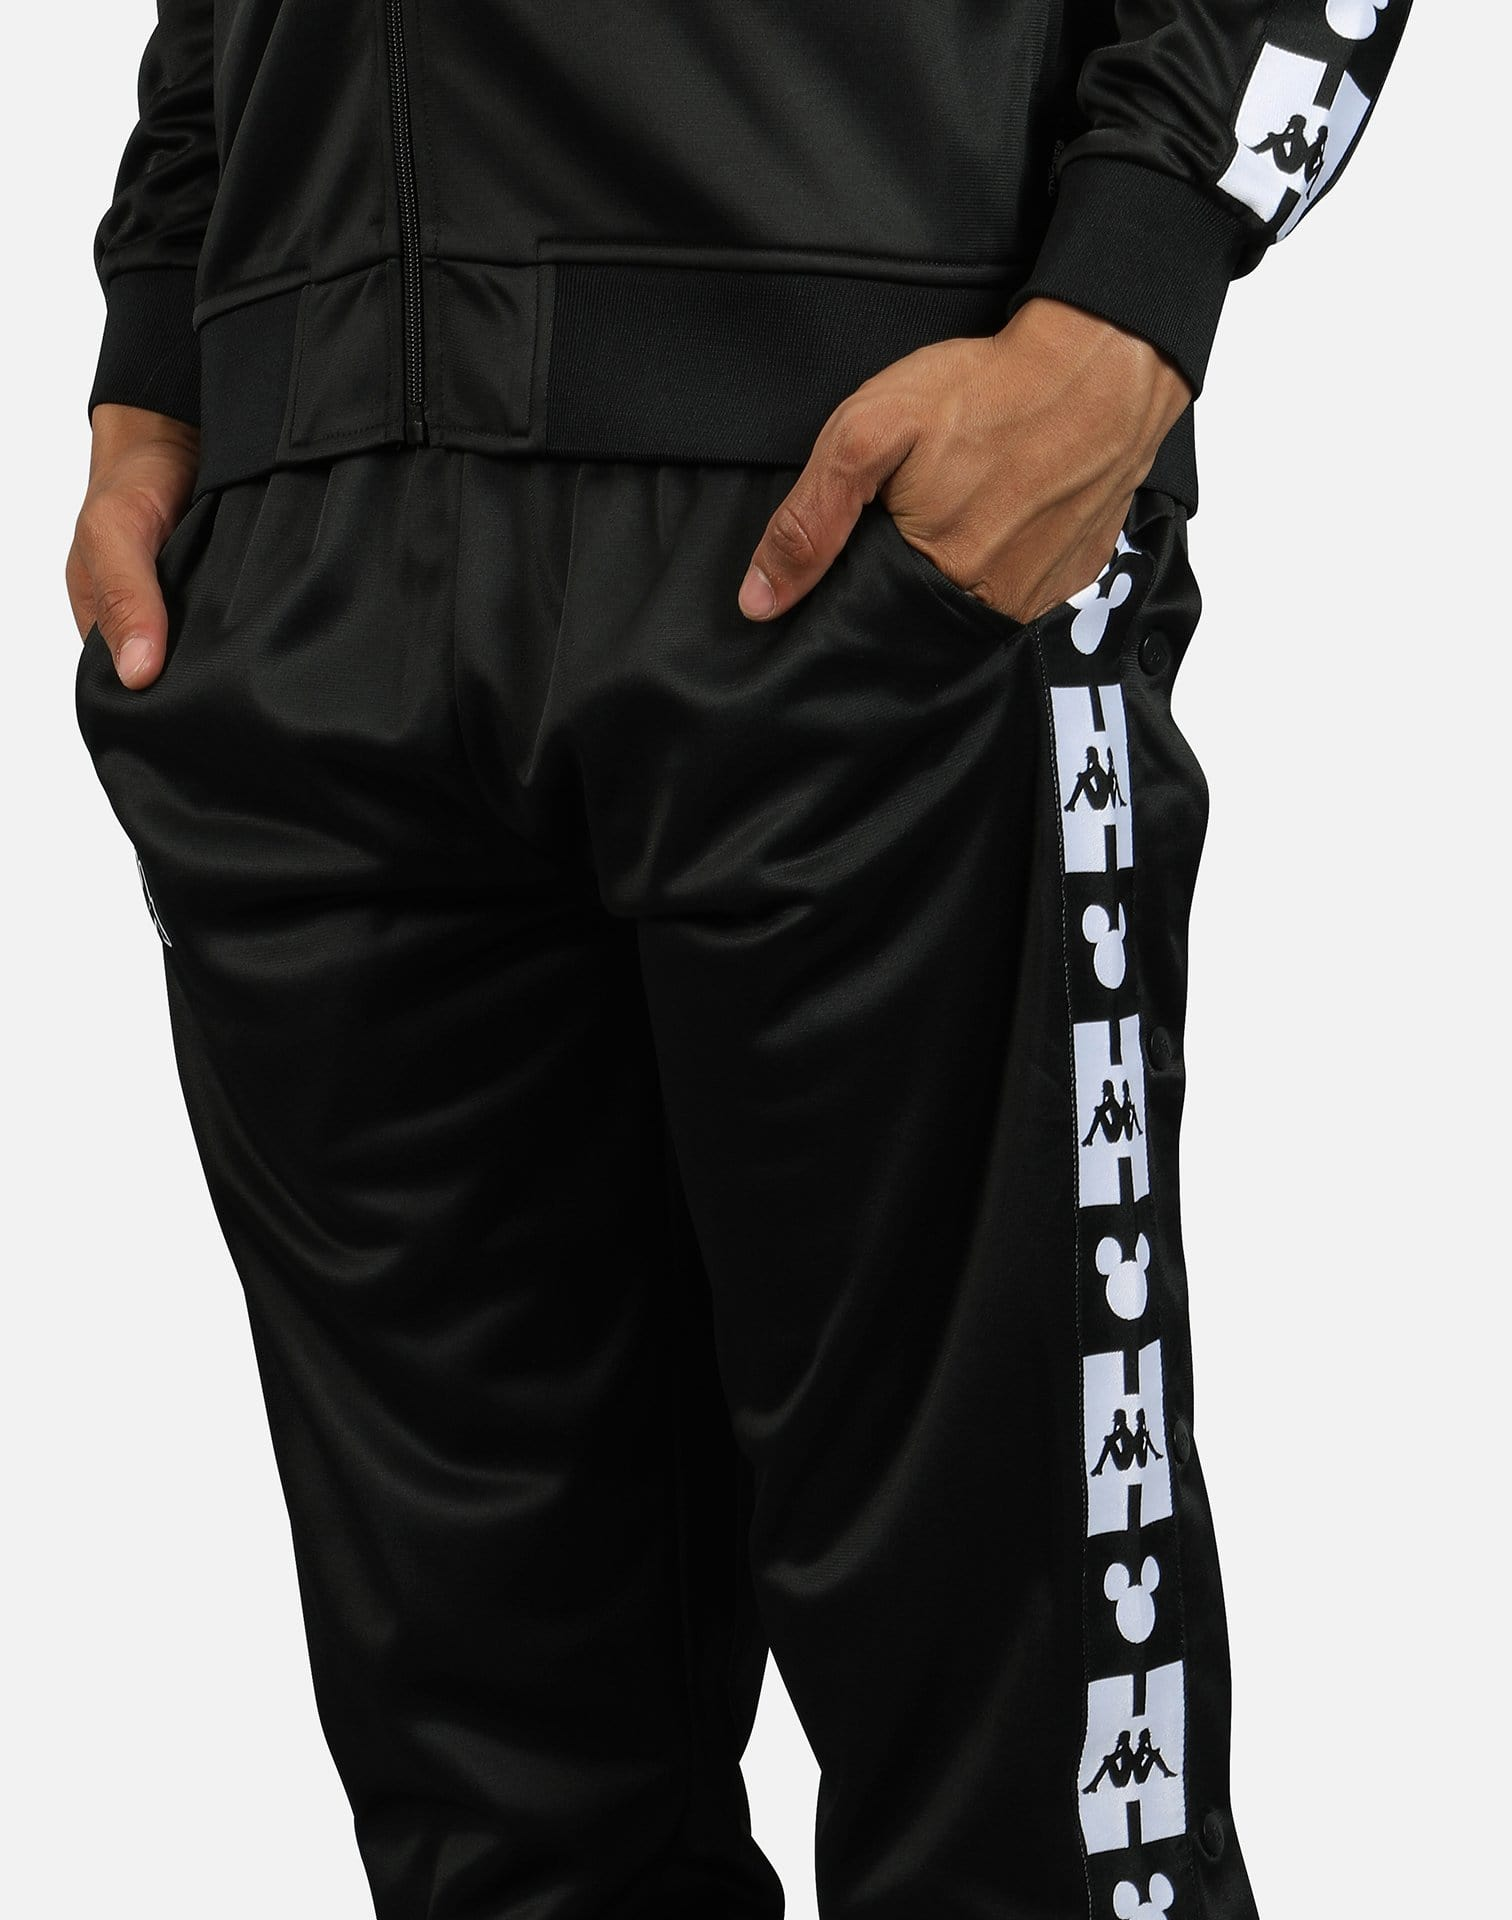 Kappa Men's Authentic Anthony x Disney Mickey Mouse Track Pants